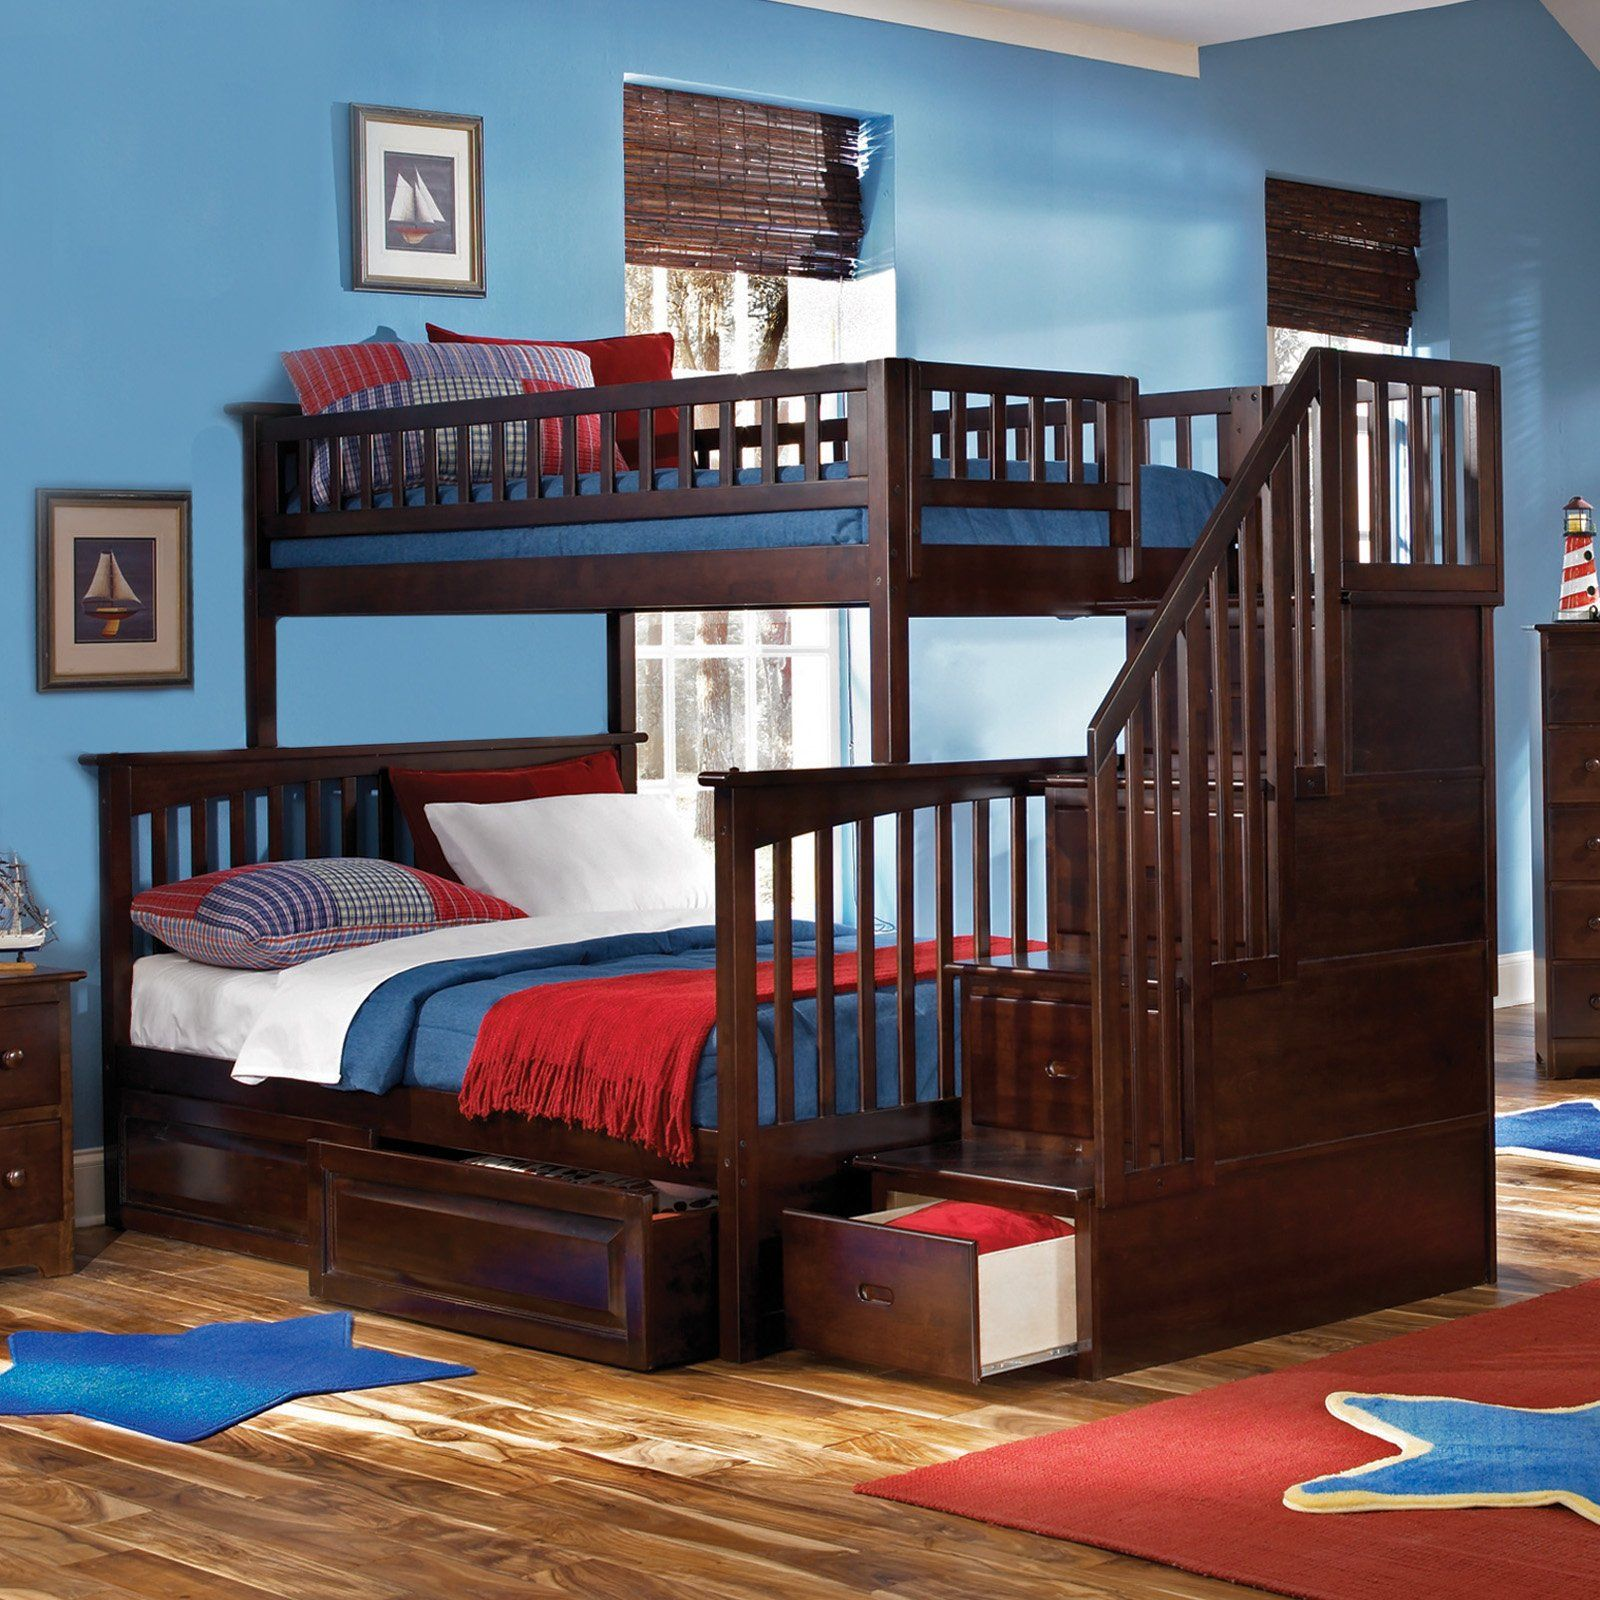 Boys' twin loft bed with storage steps  How cool a bunk bed with stairs that have drawers in them too